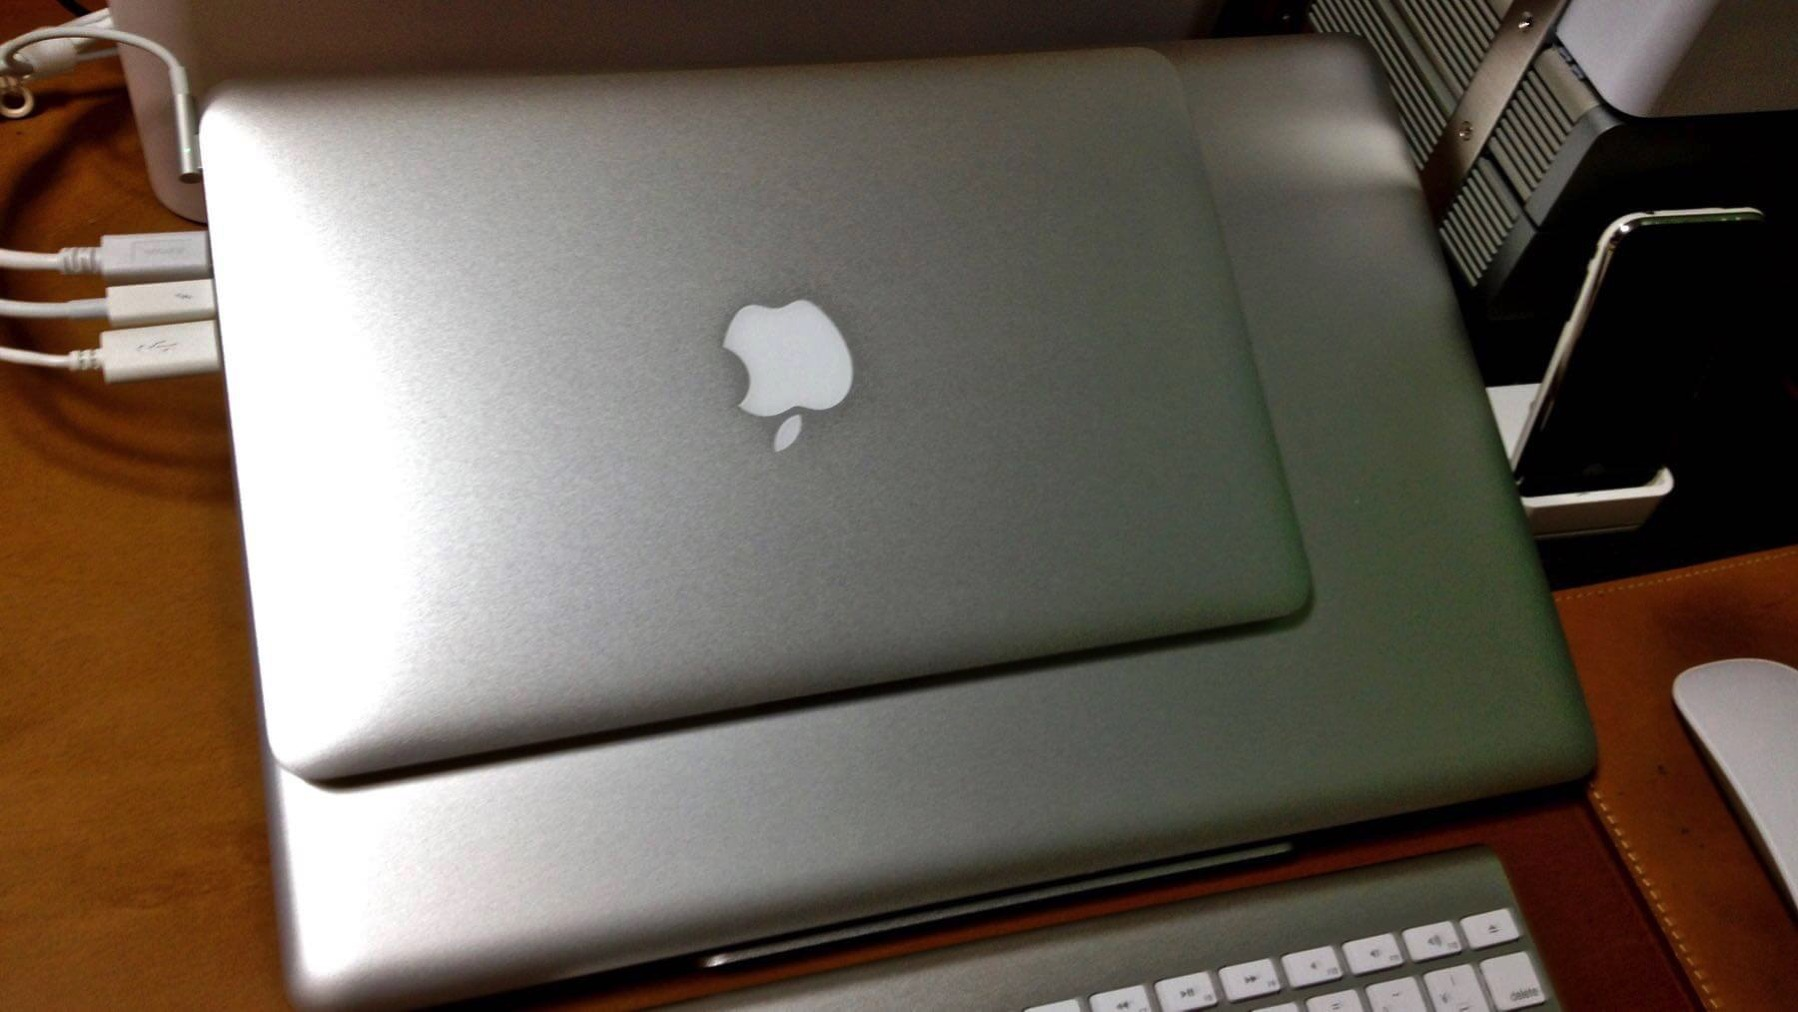 07 MacBook Air2013 Mid 11inch Pro 2011 17inch